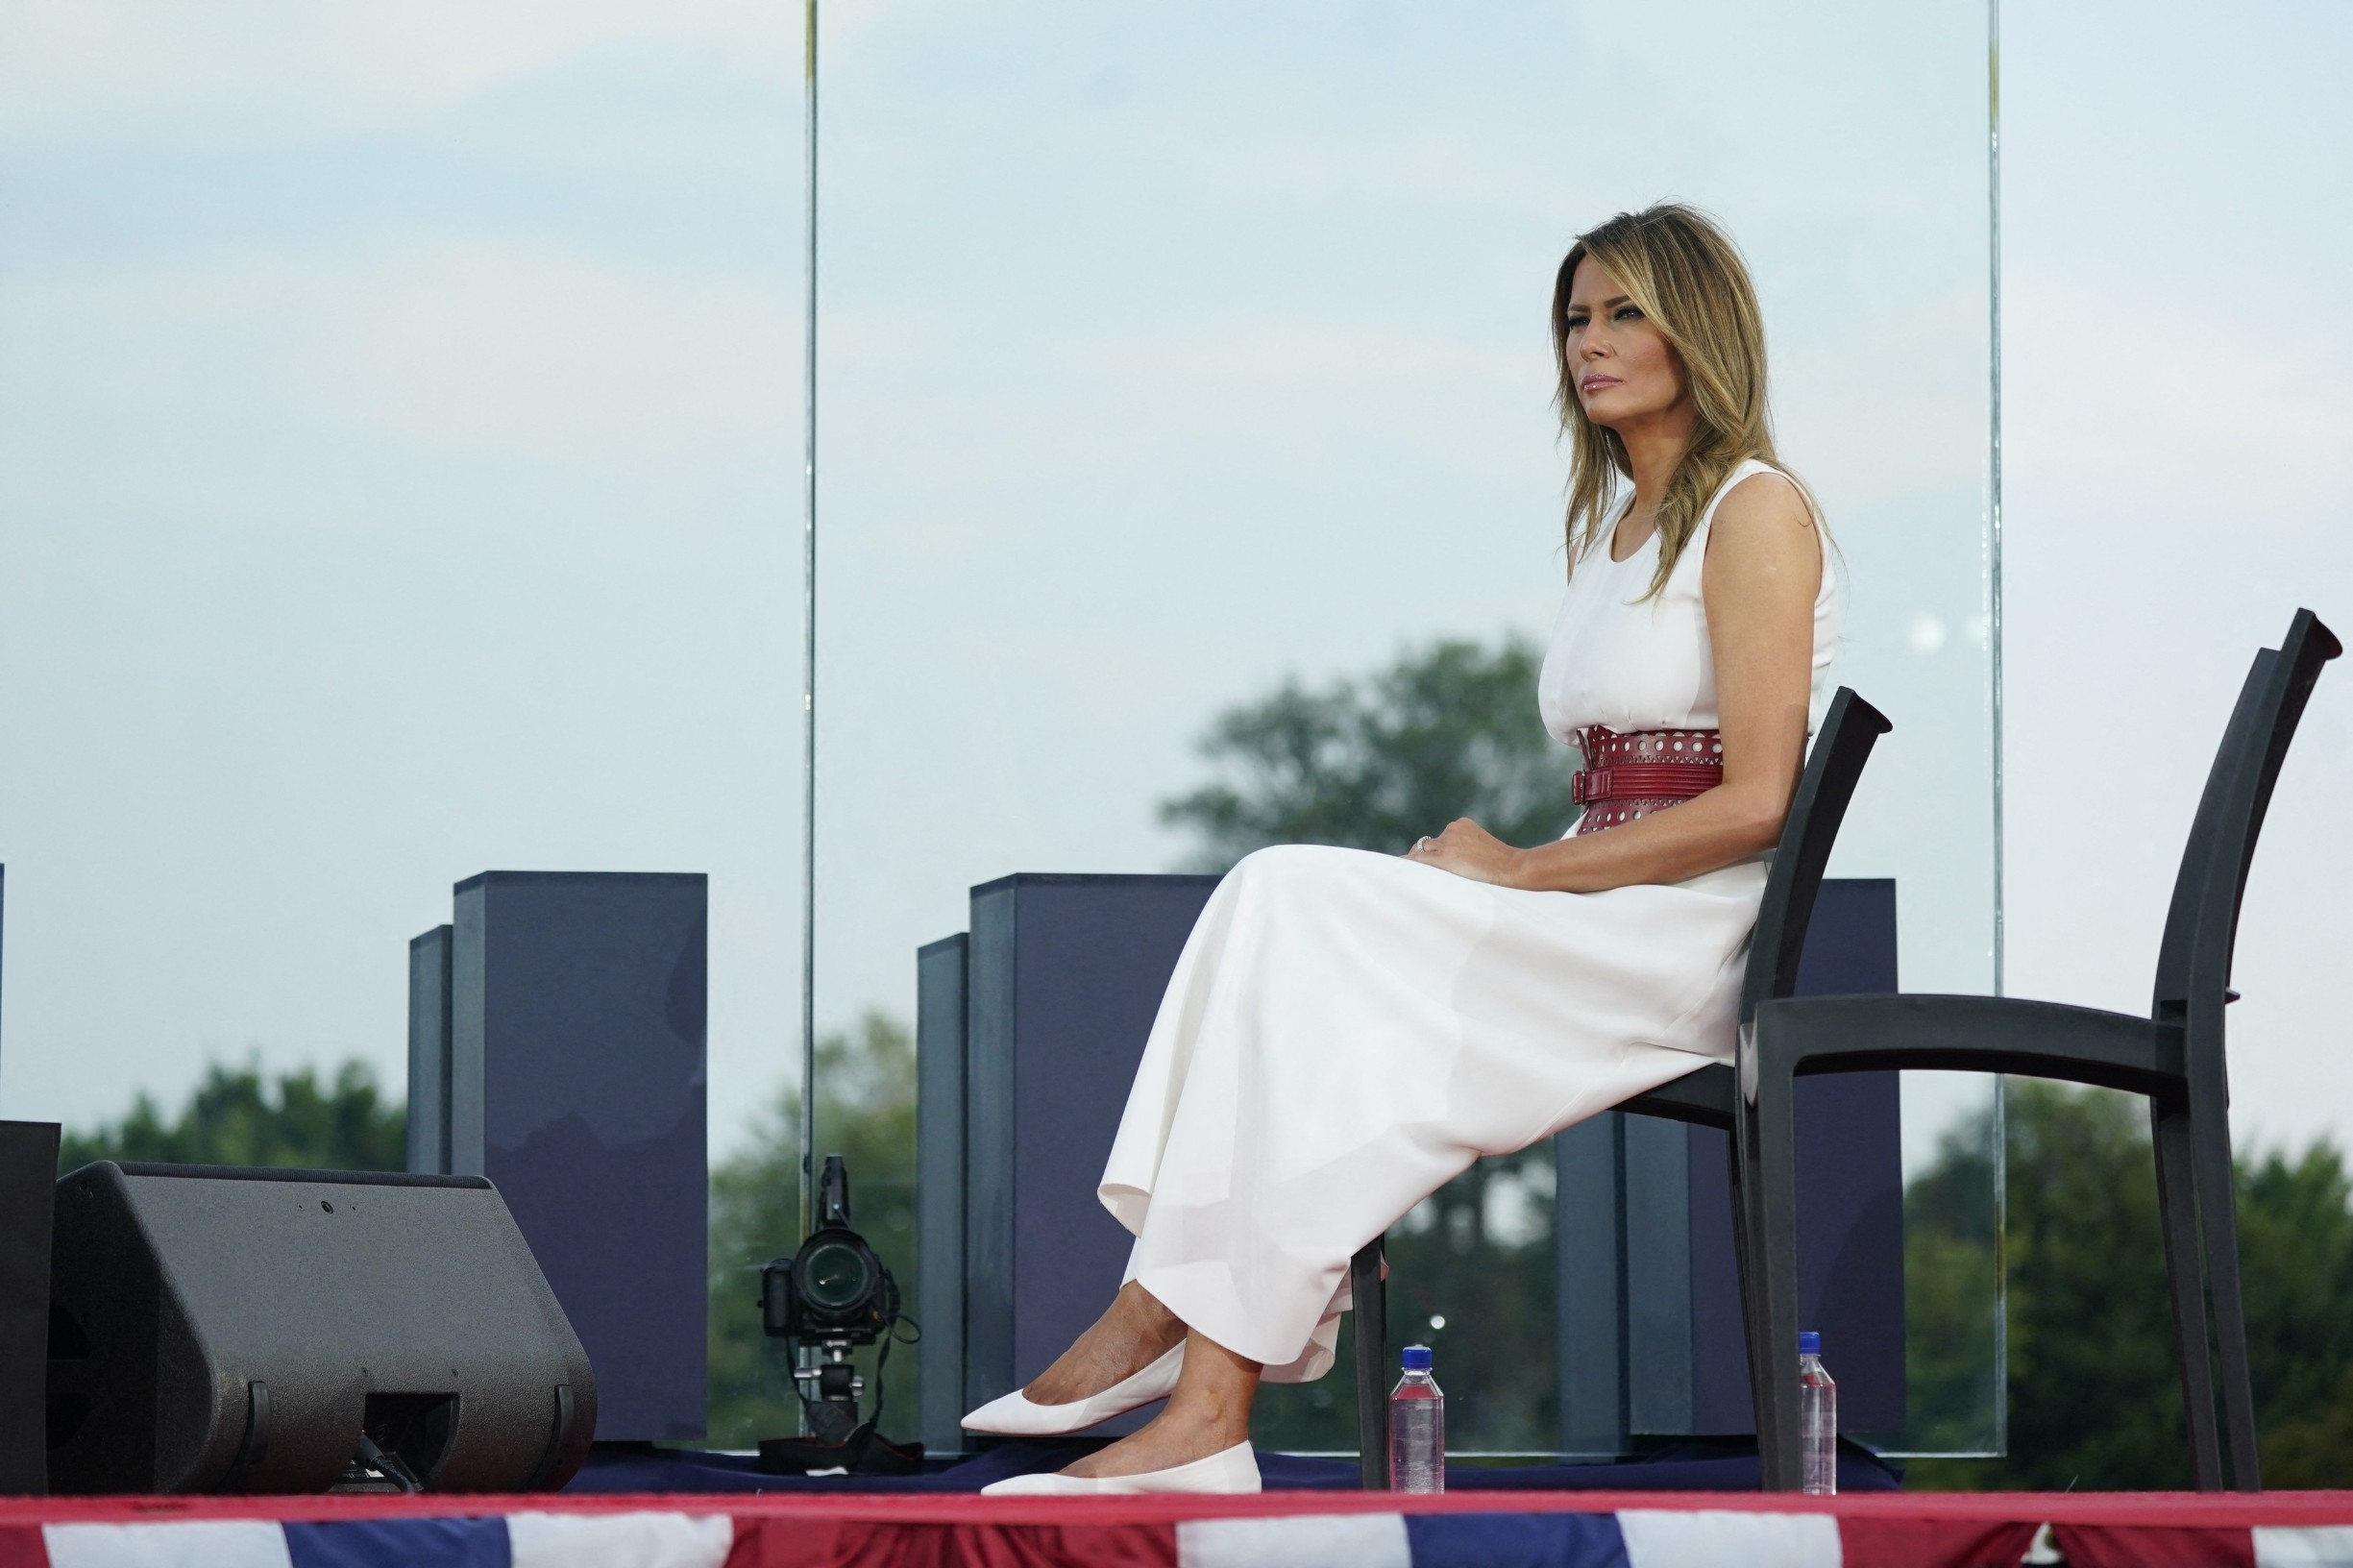 July 4, 2020 - Washington, DC, United States: United States President Donald Trump and First lady Melania Trump participate in the 2020 Salute to America at the White House.,Image: 539839326, License: Rights-managed, Restrictions: , Model Release: no, Credit line: Pool/ABACA / Abaca Press / Profimedia